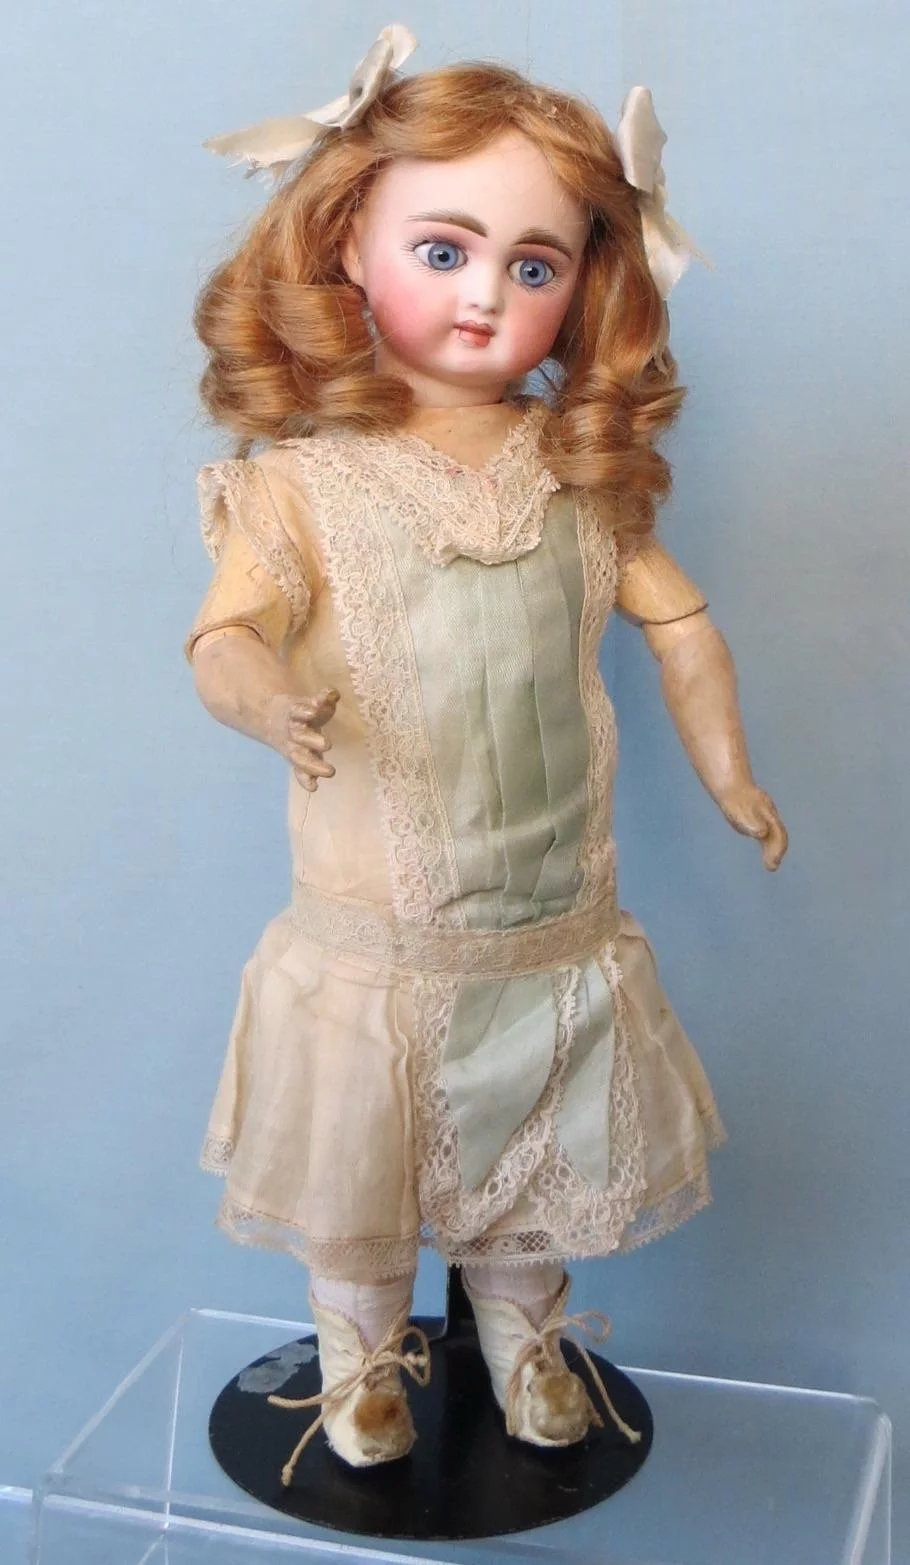 Antique German Bisque Doll By Gebruder Kuhnlenz For French